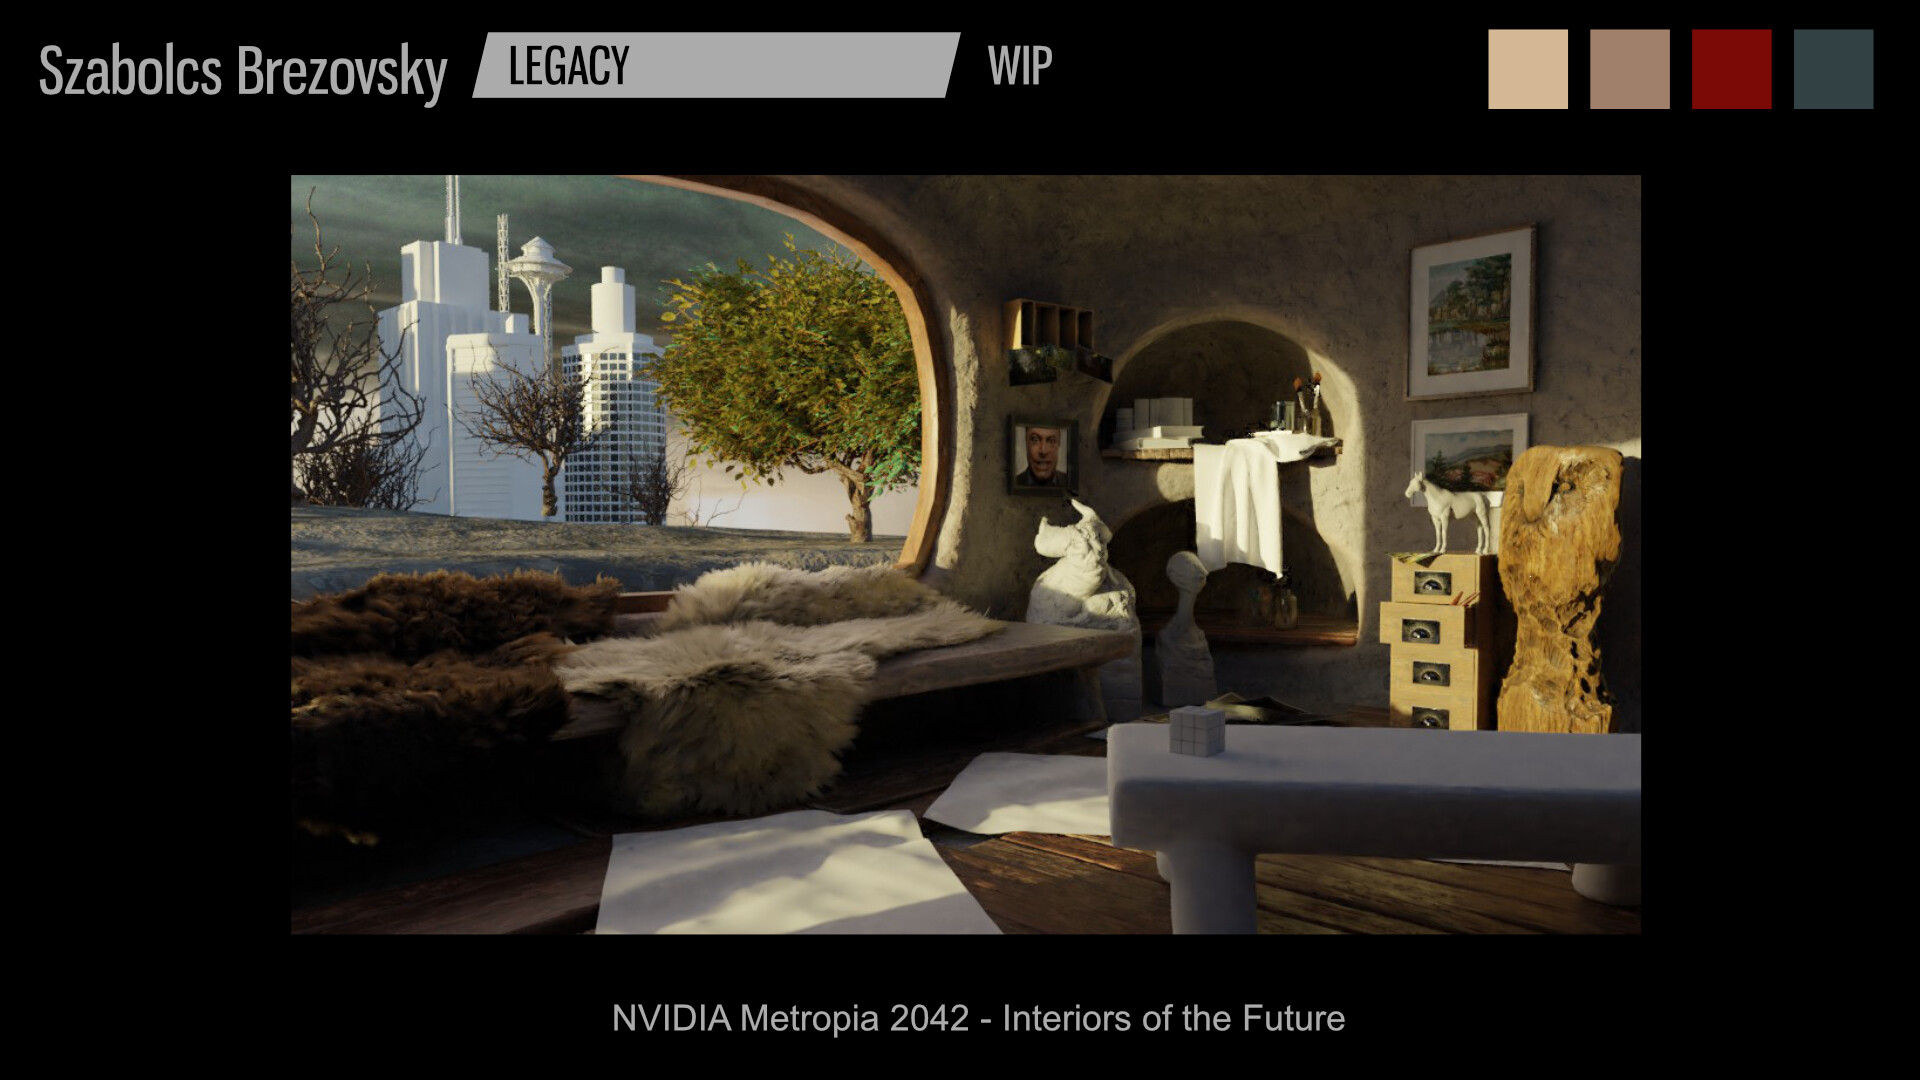 ArtStation - Szabolcs Brezovsky's submission on NVIDIA Metropia 2042